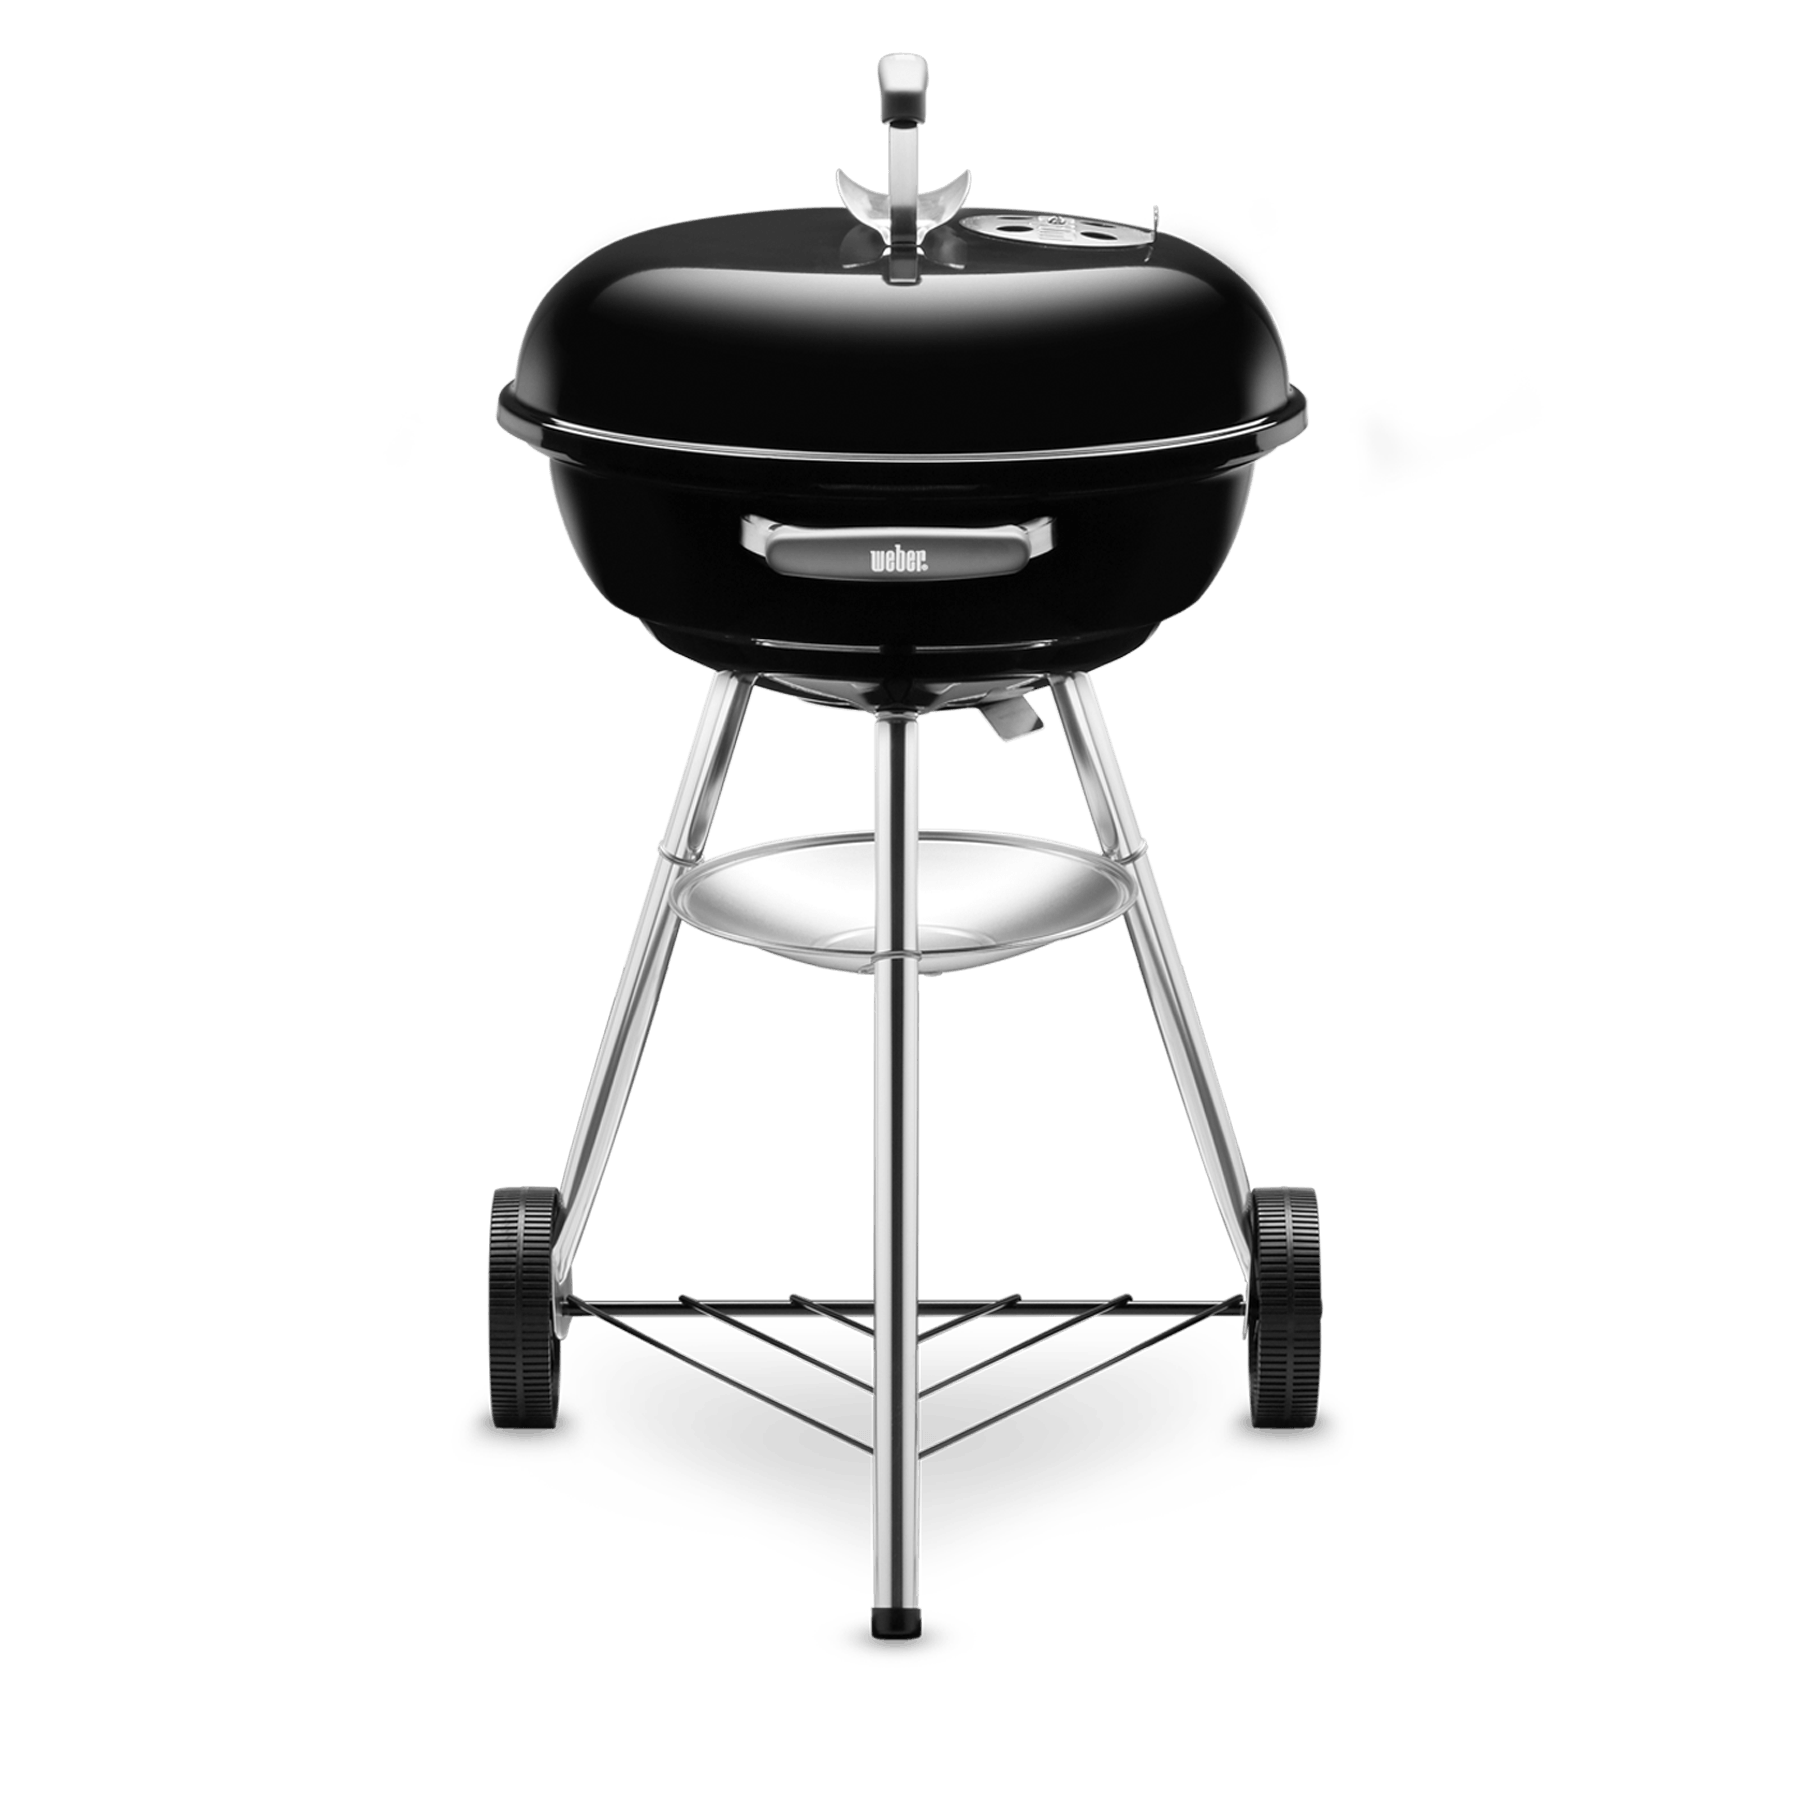 Outdoor Küche Weber 57 Compact Kettle Holzkohlegrill Ø 47 Cm Compact Serie